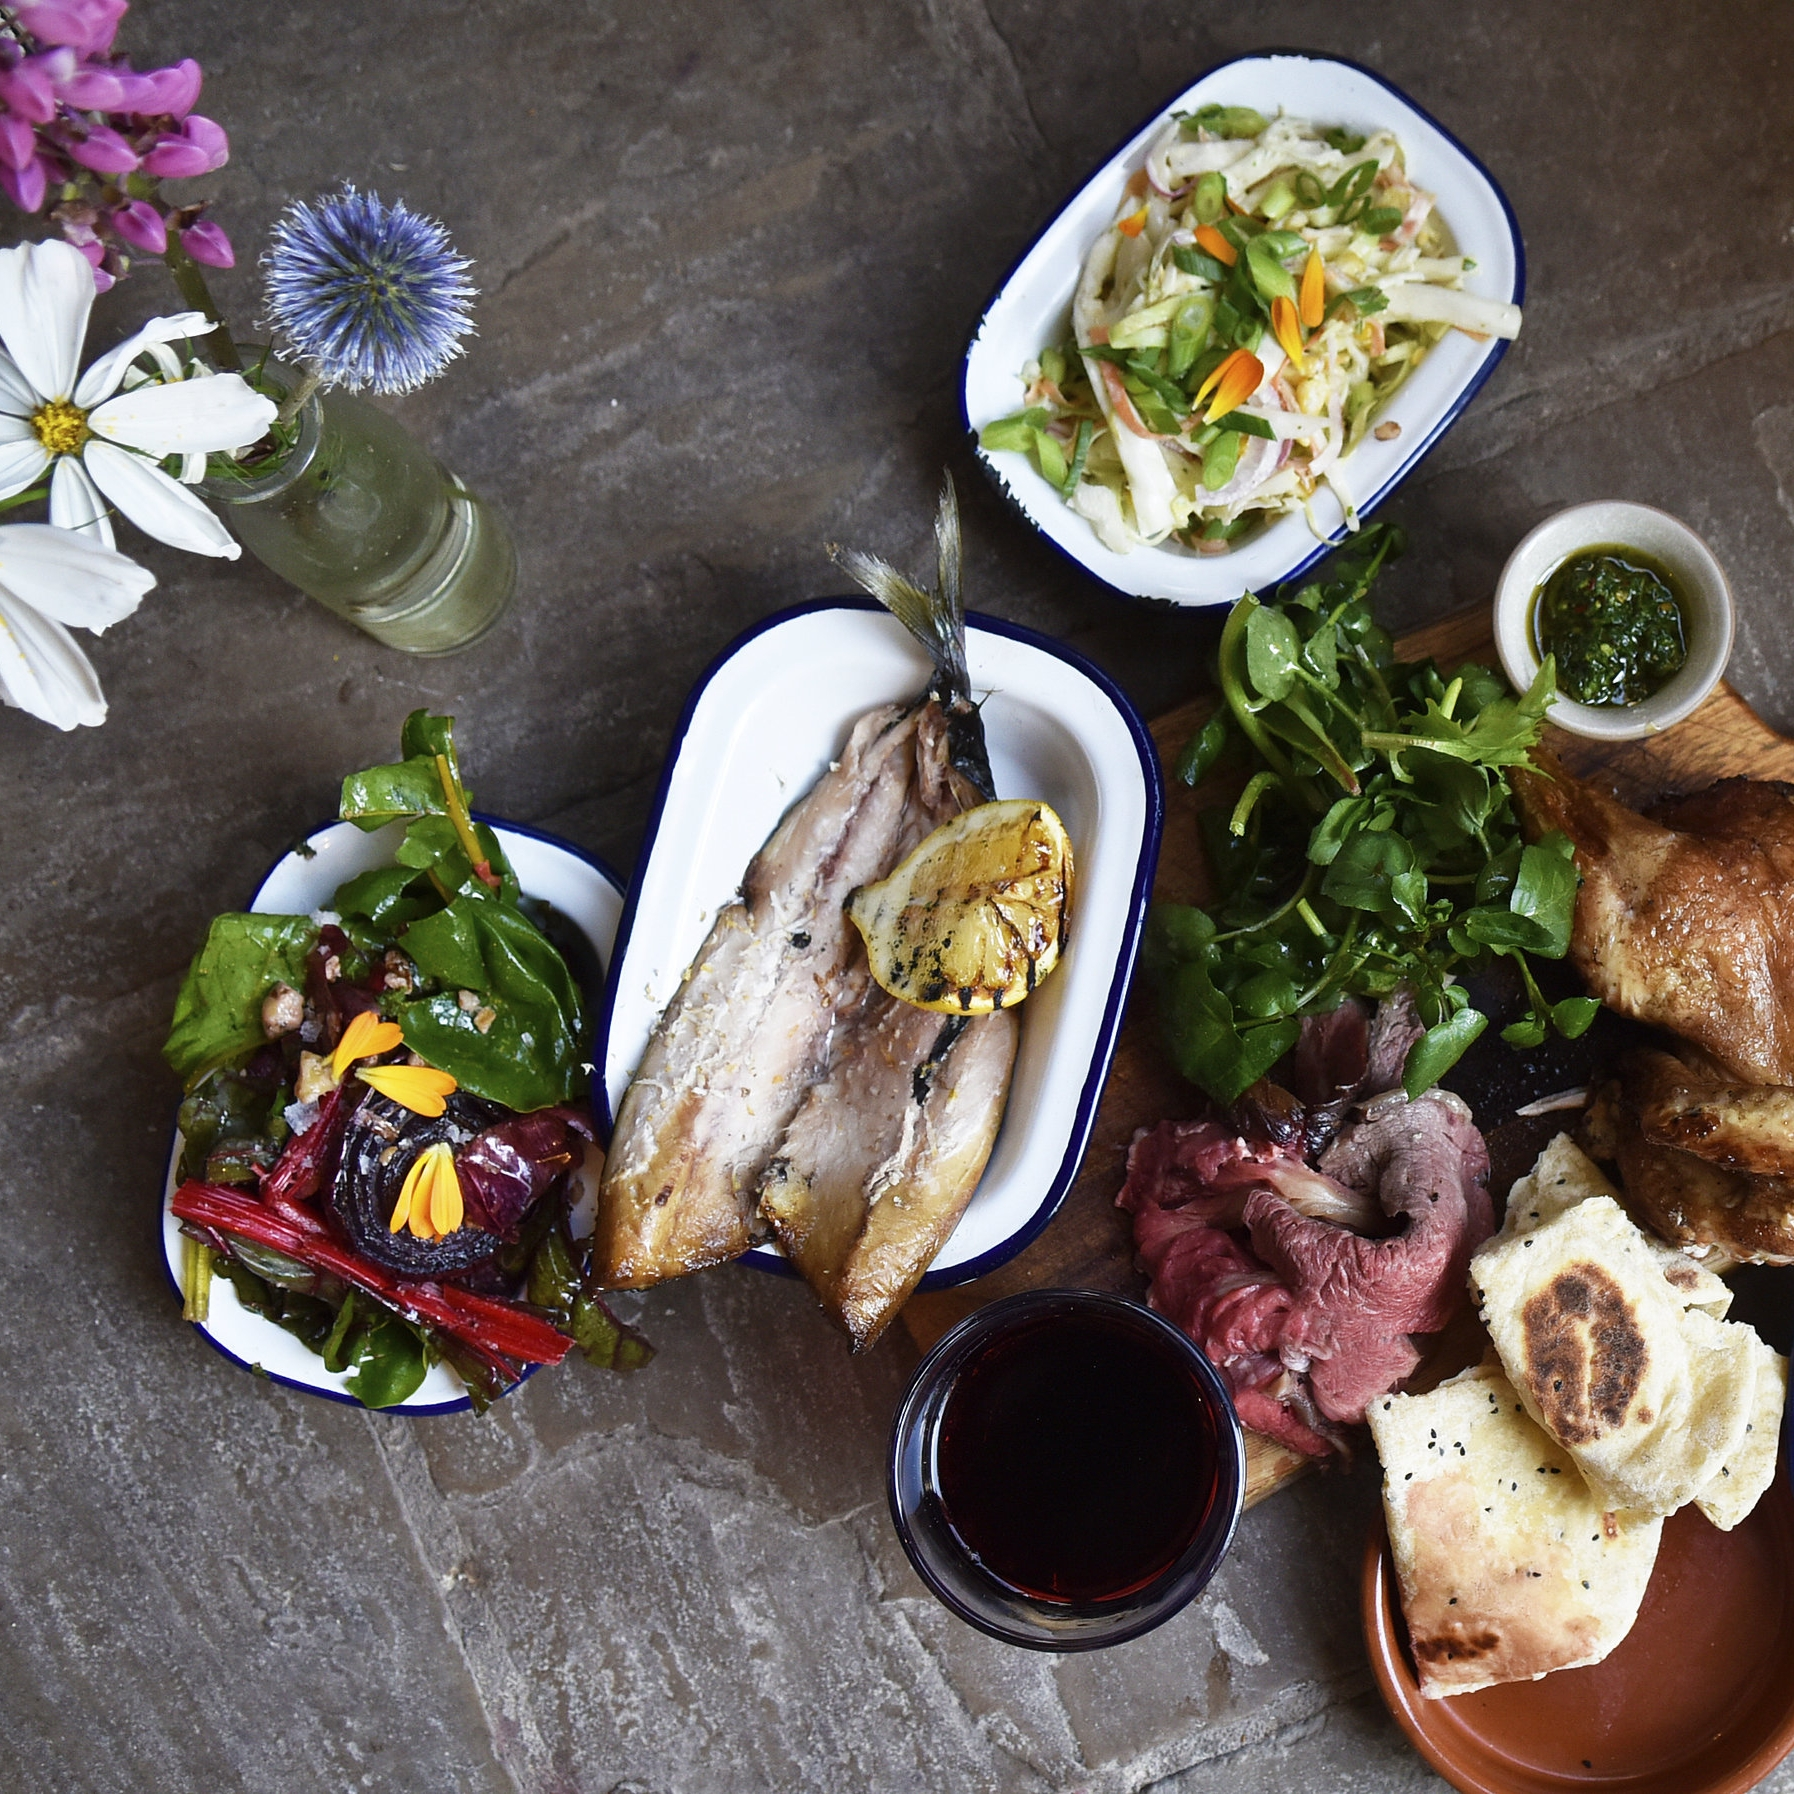 A typical Fire Pit Feast using homegrown ingredients